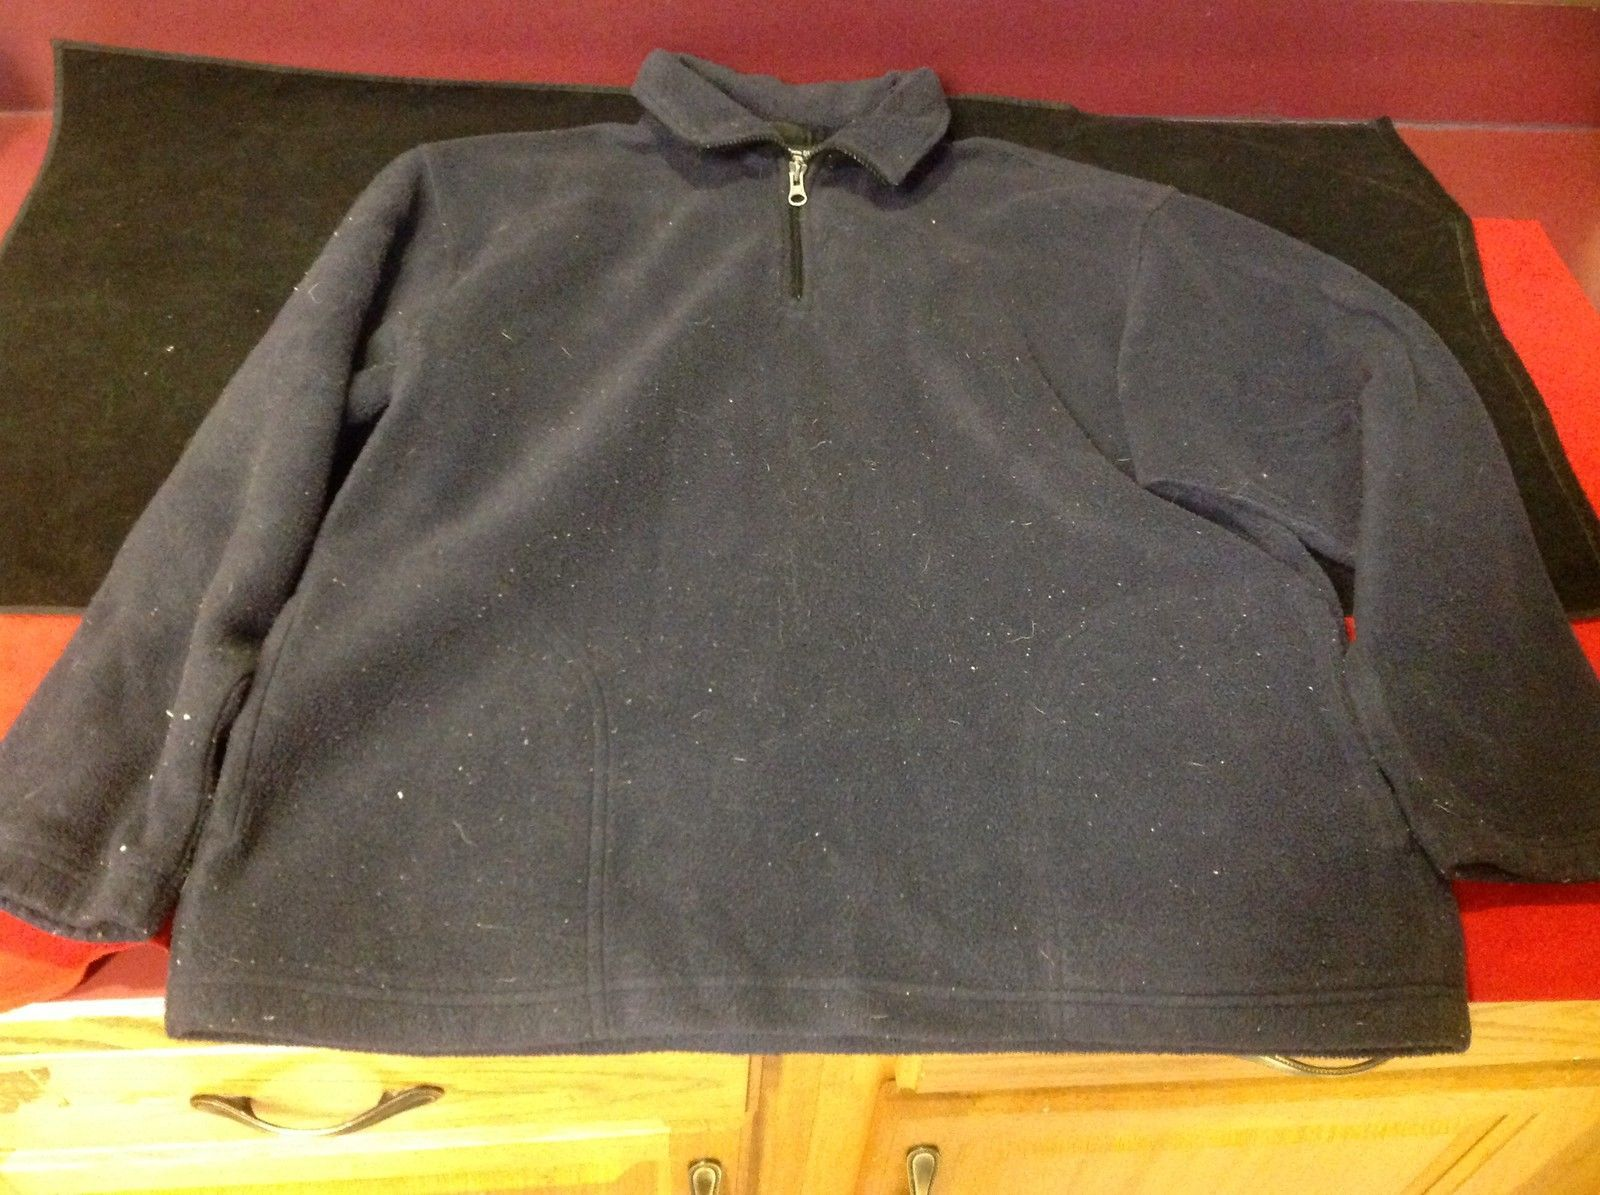 Outdoor Urban Terran Mens Blue Sweater Zipper Closure at Neck Size Medium